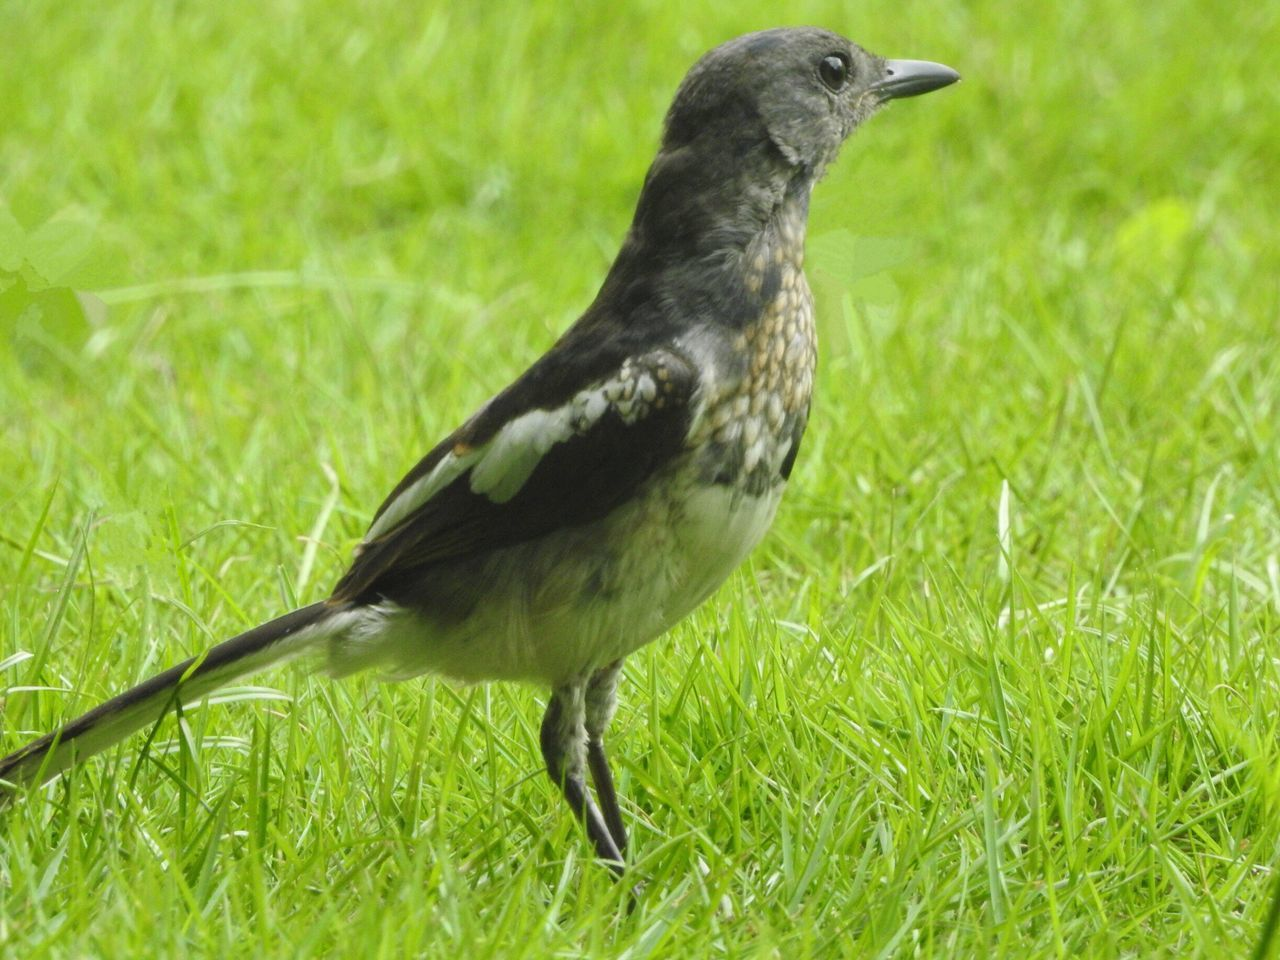 Bird Grass Animal Themes One Animal Animals In The Wild Animal Wildlife Green Color Field Nature Day No People Outdoors Growth Full Length Perching Close-up (null)